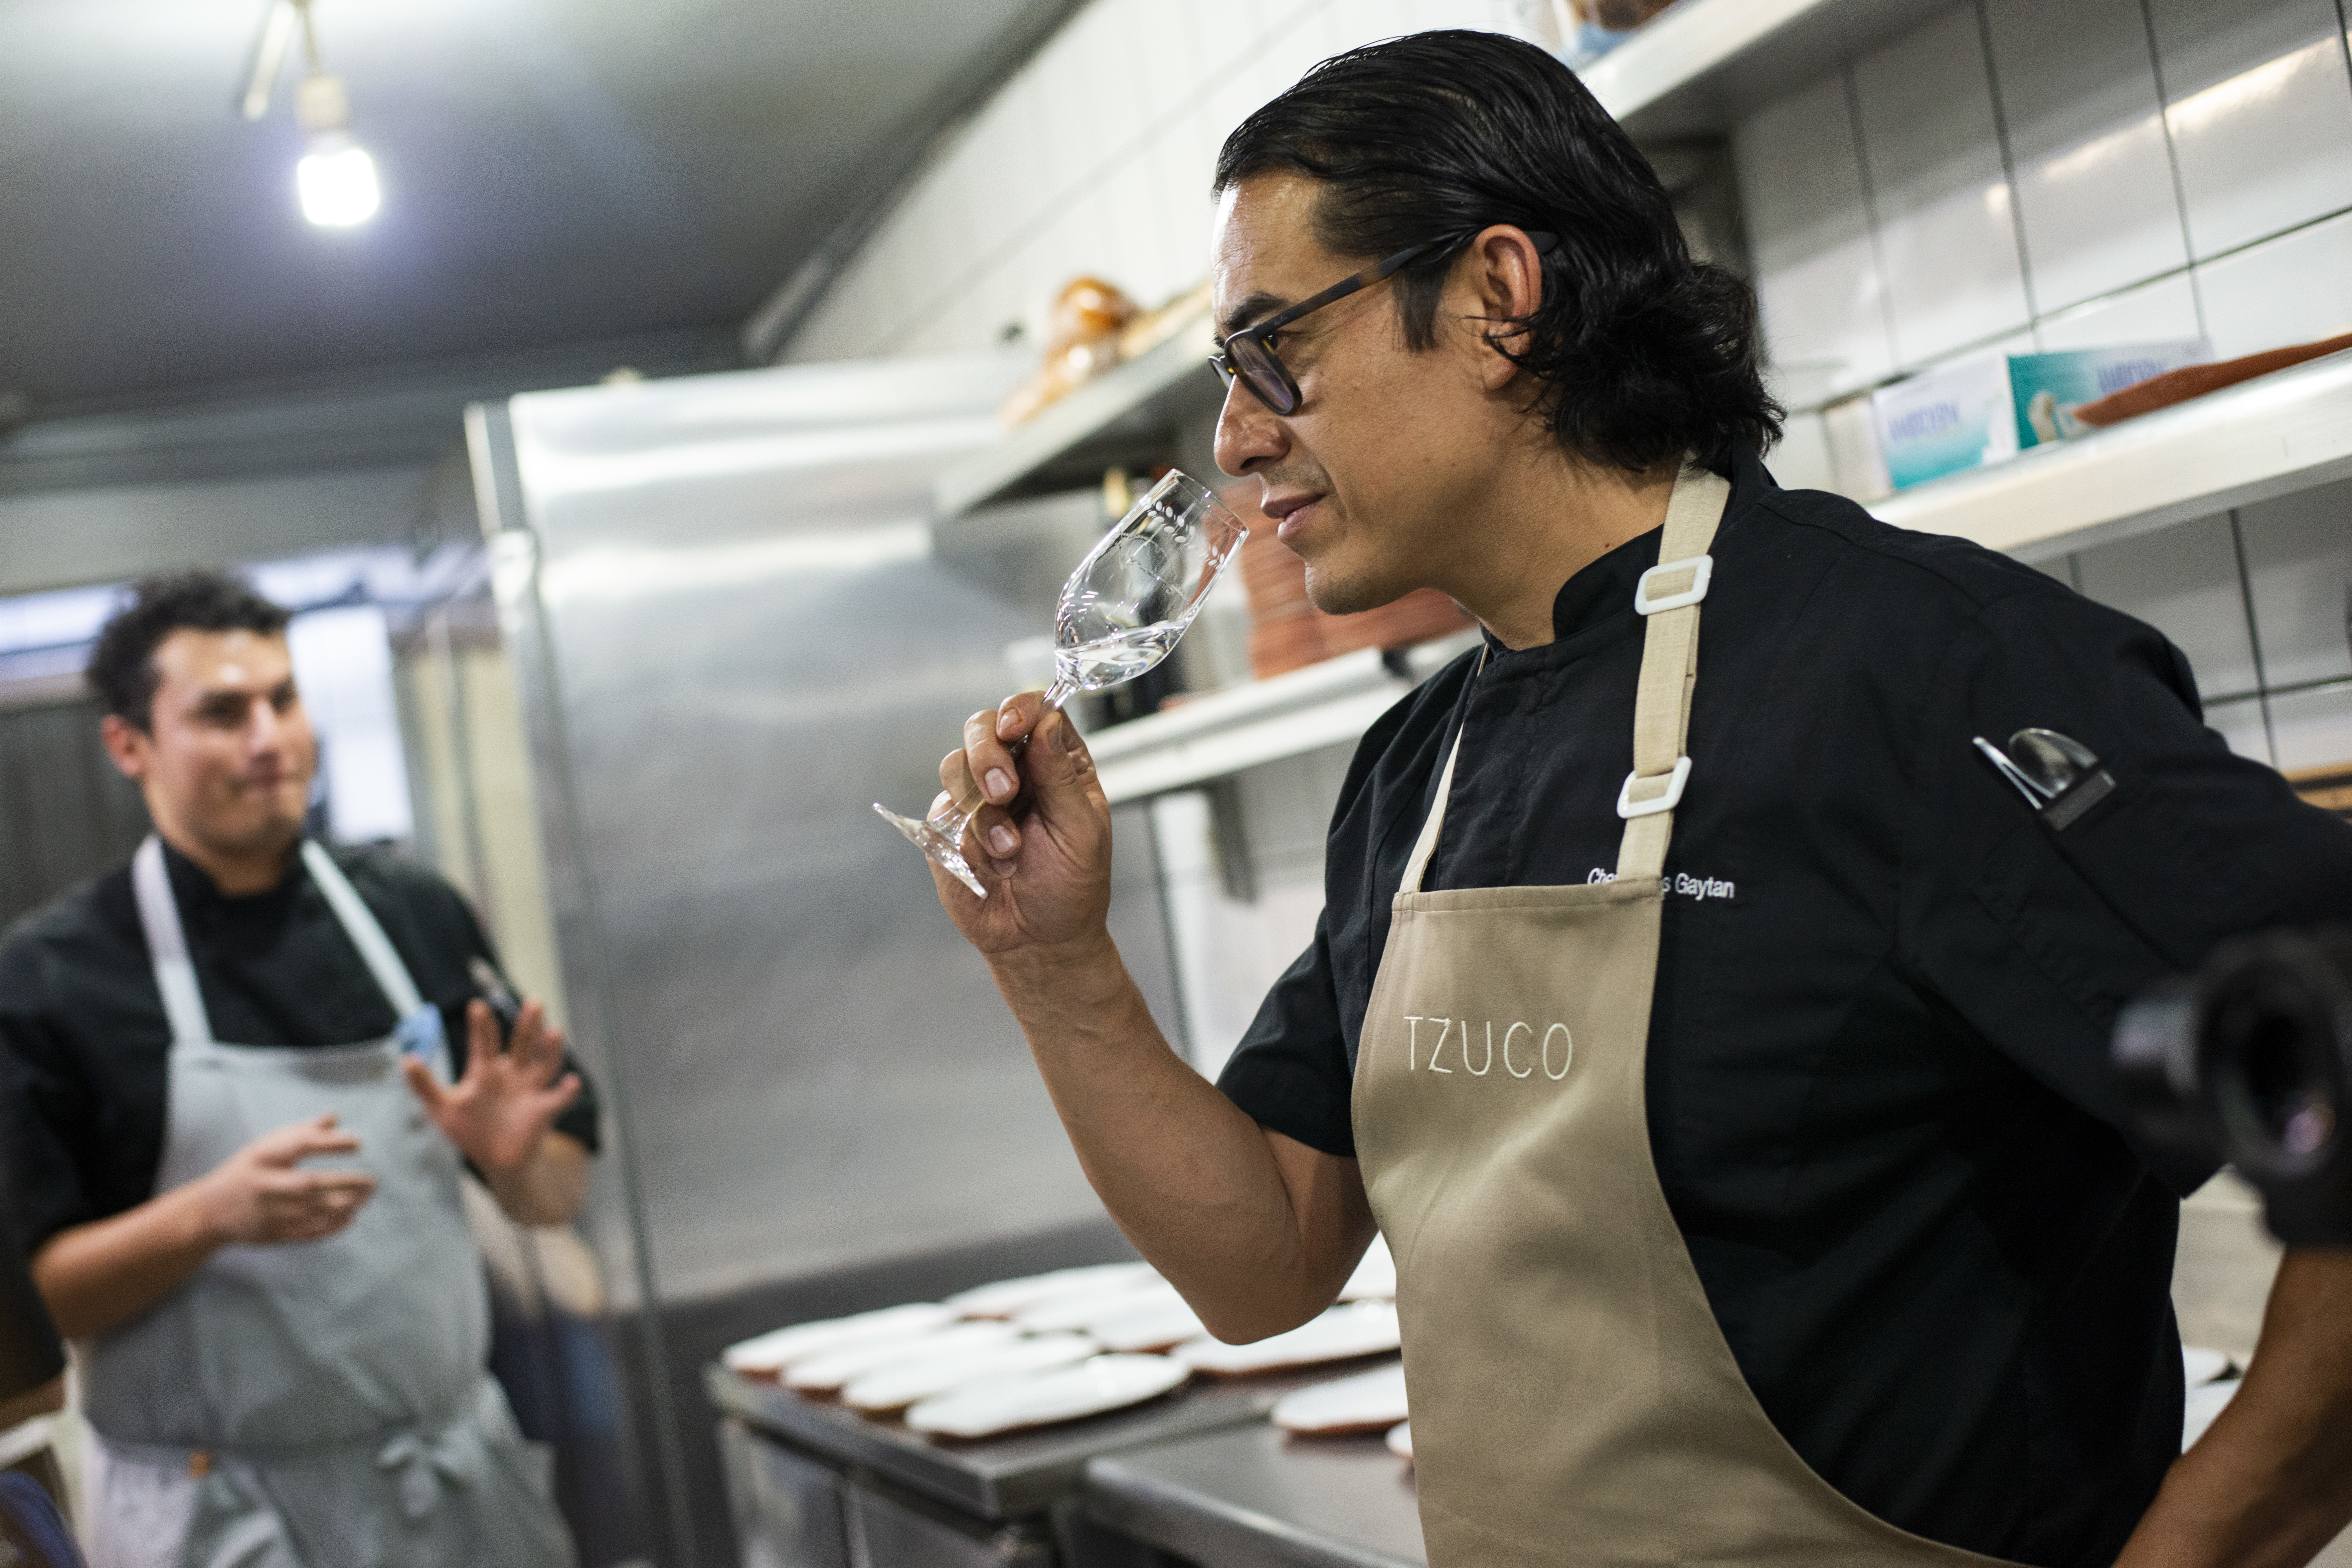 A chef drinking wine in a kitchen.